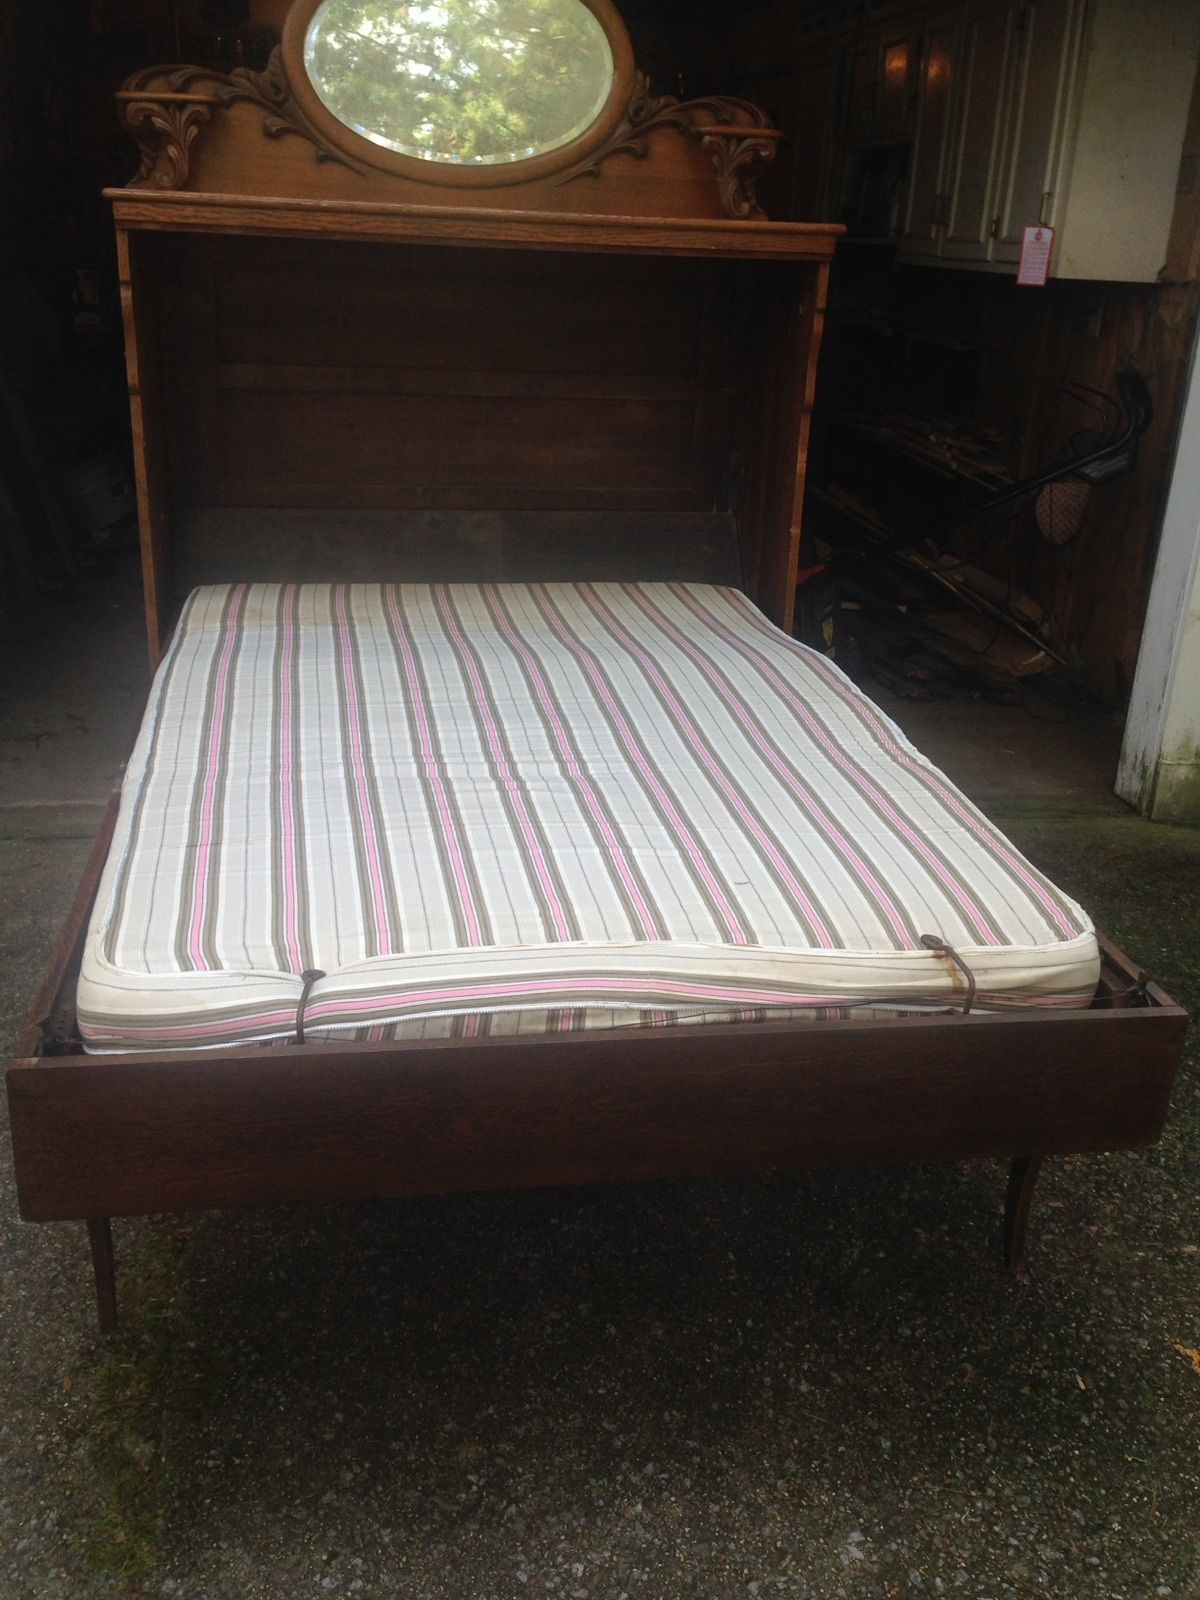 Antique Murphy Bed | Antiques, Furniture, Beds & Bedroom Sets | eBay! - Antique Murphy Bed Antiques, Furniture, Beds & Bedroom Sets EBay